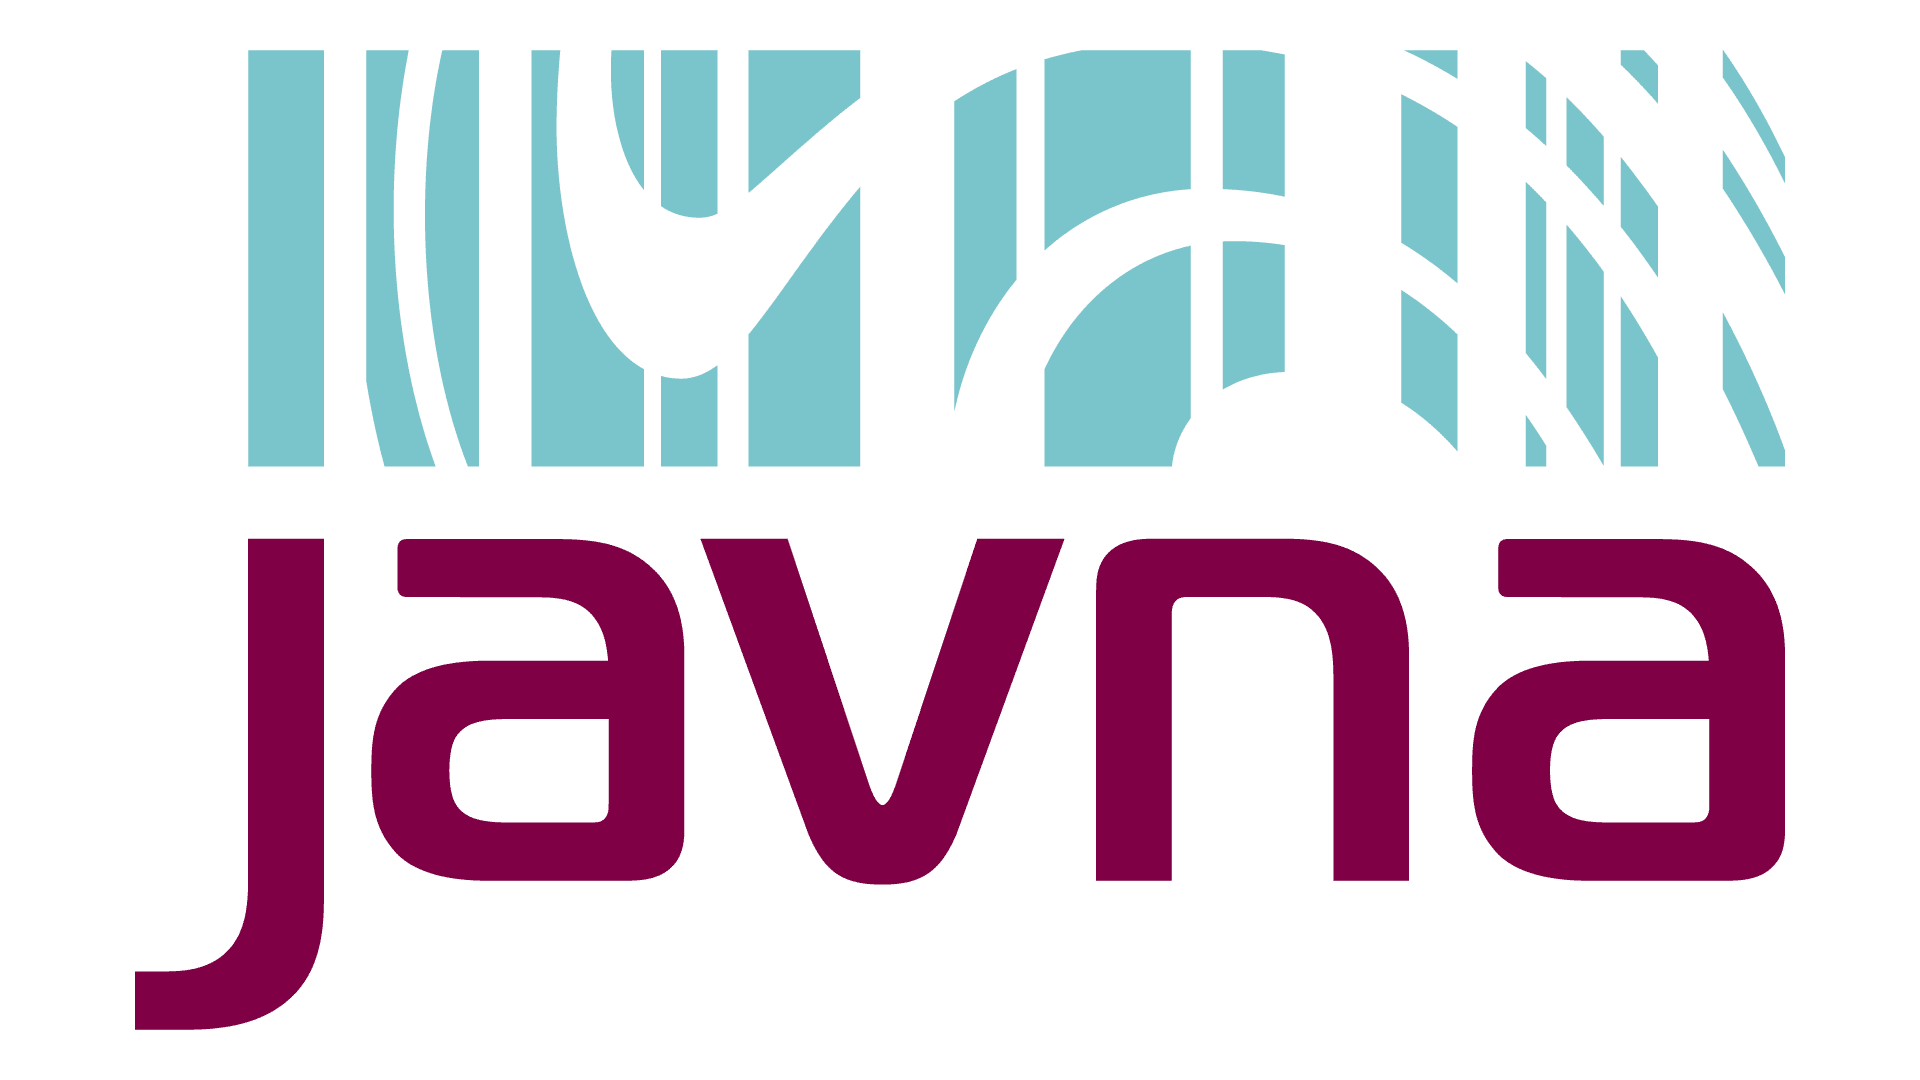 Javna_logo_Colored